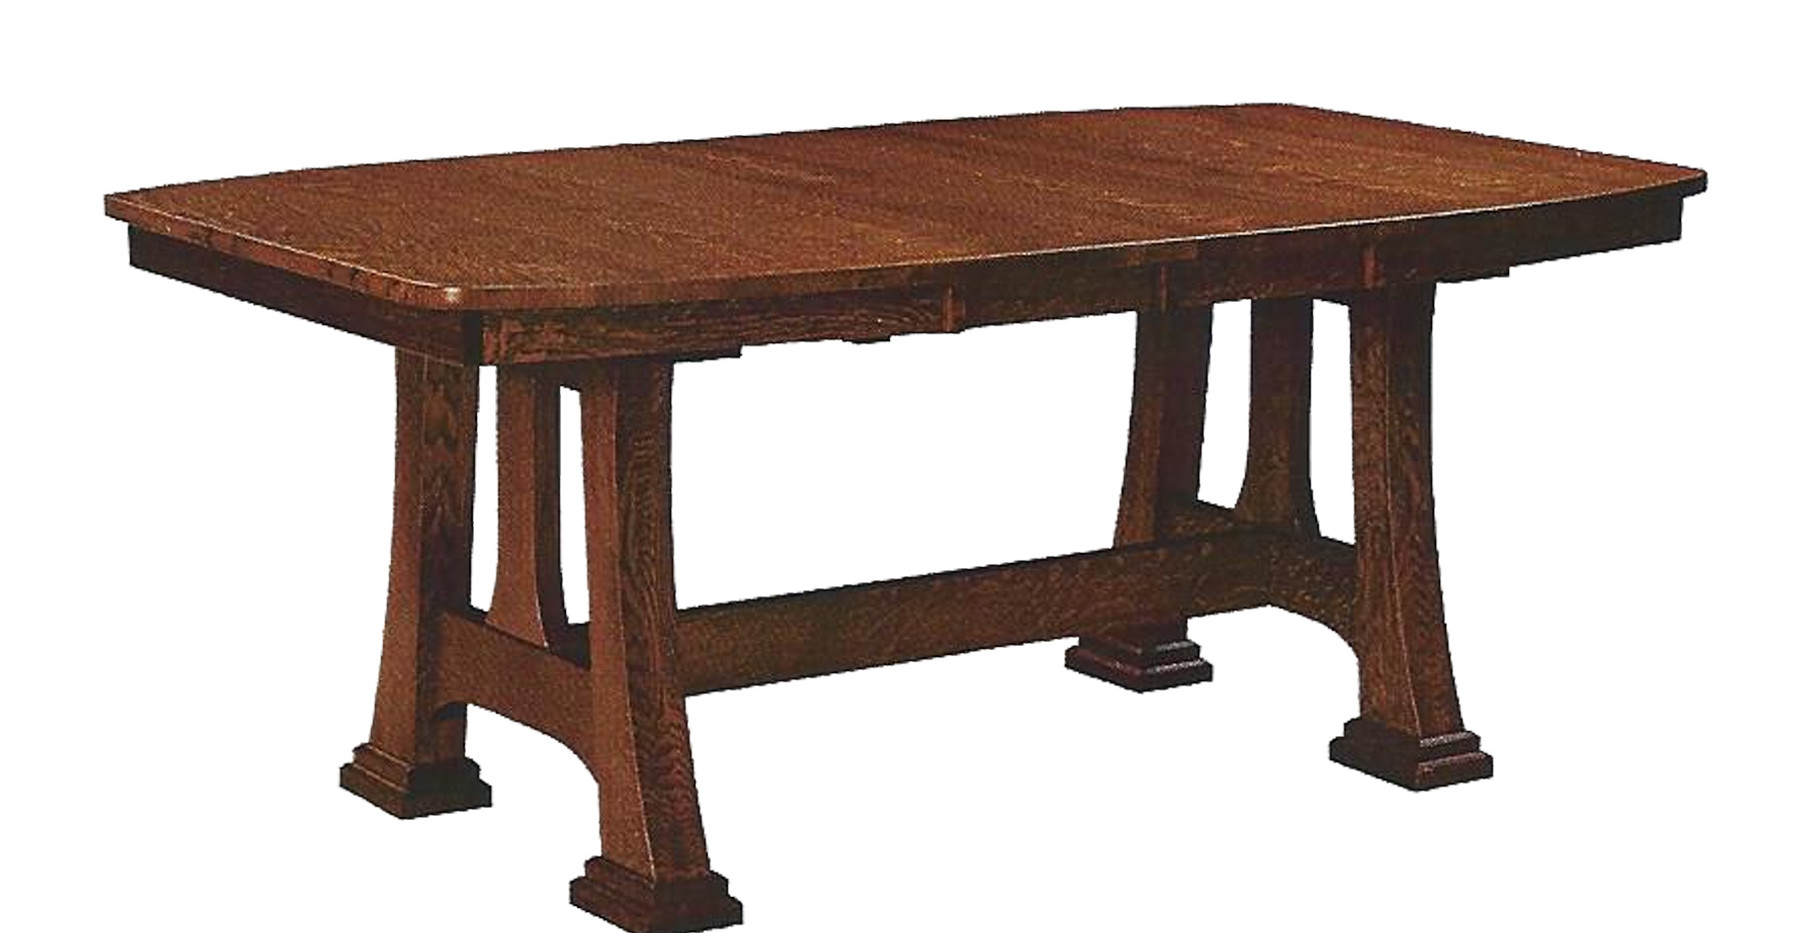 Caledonia Table